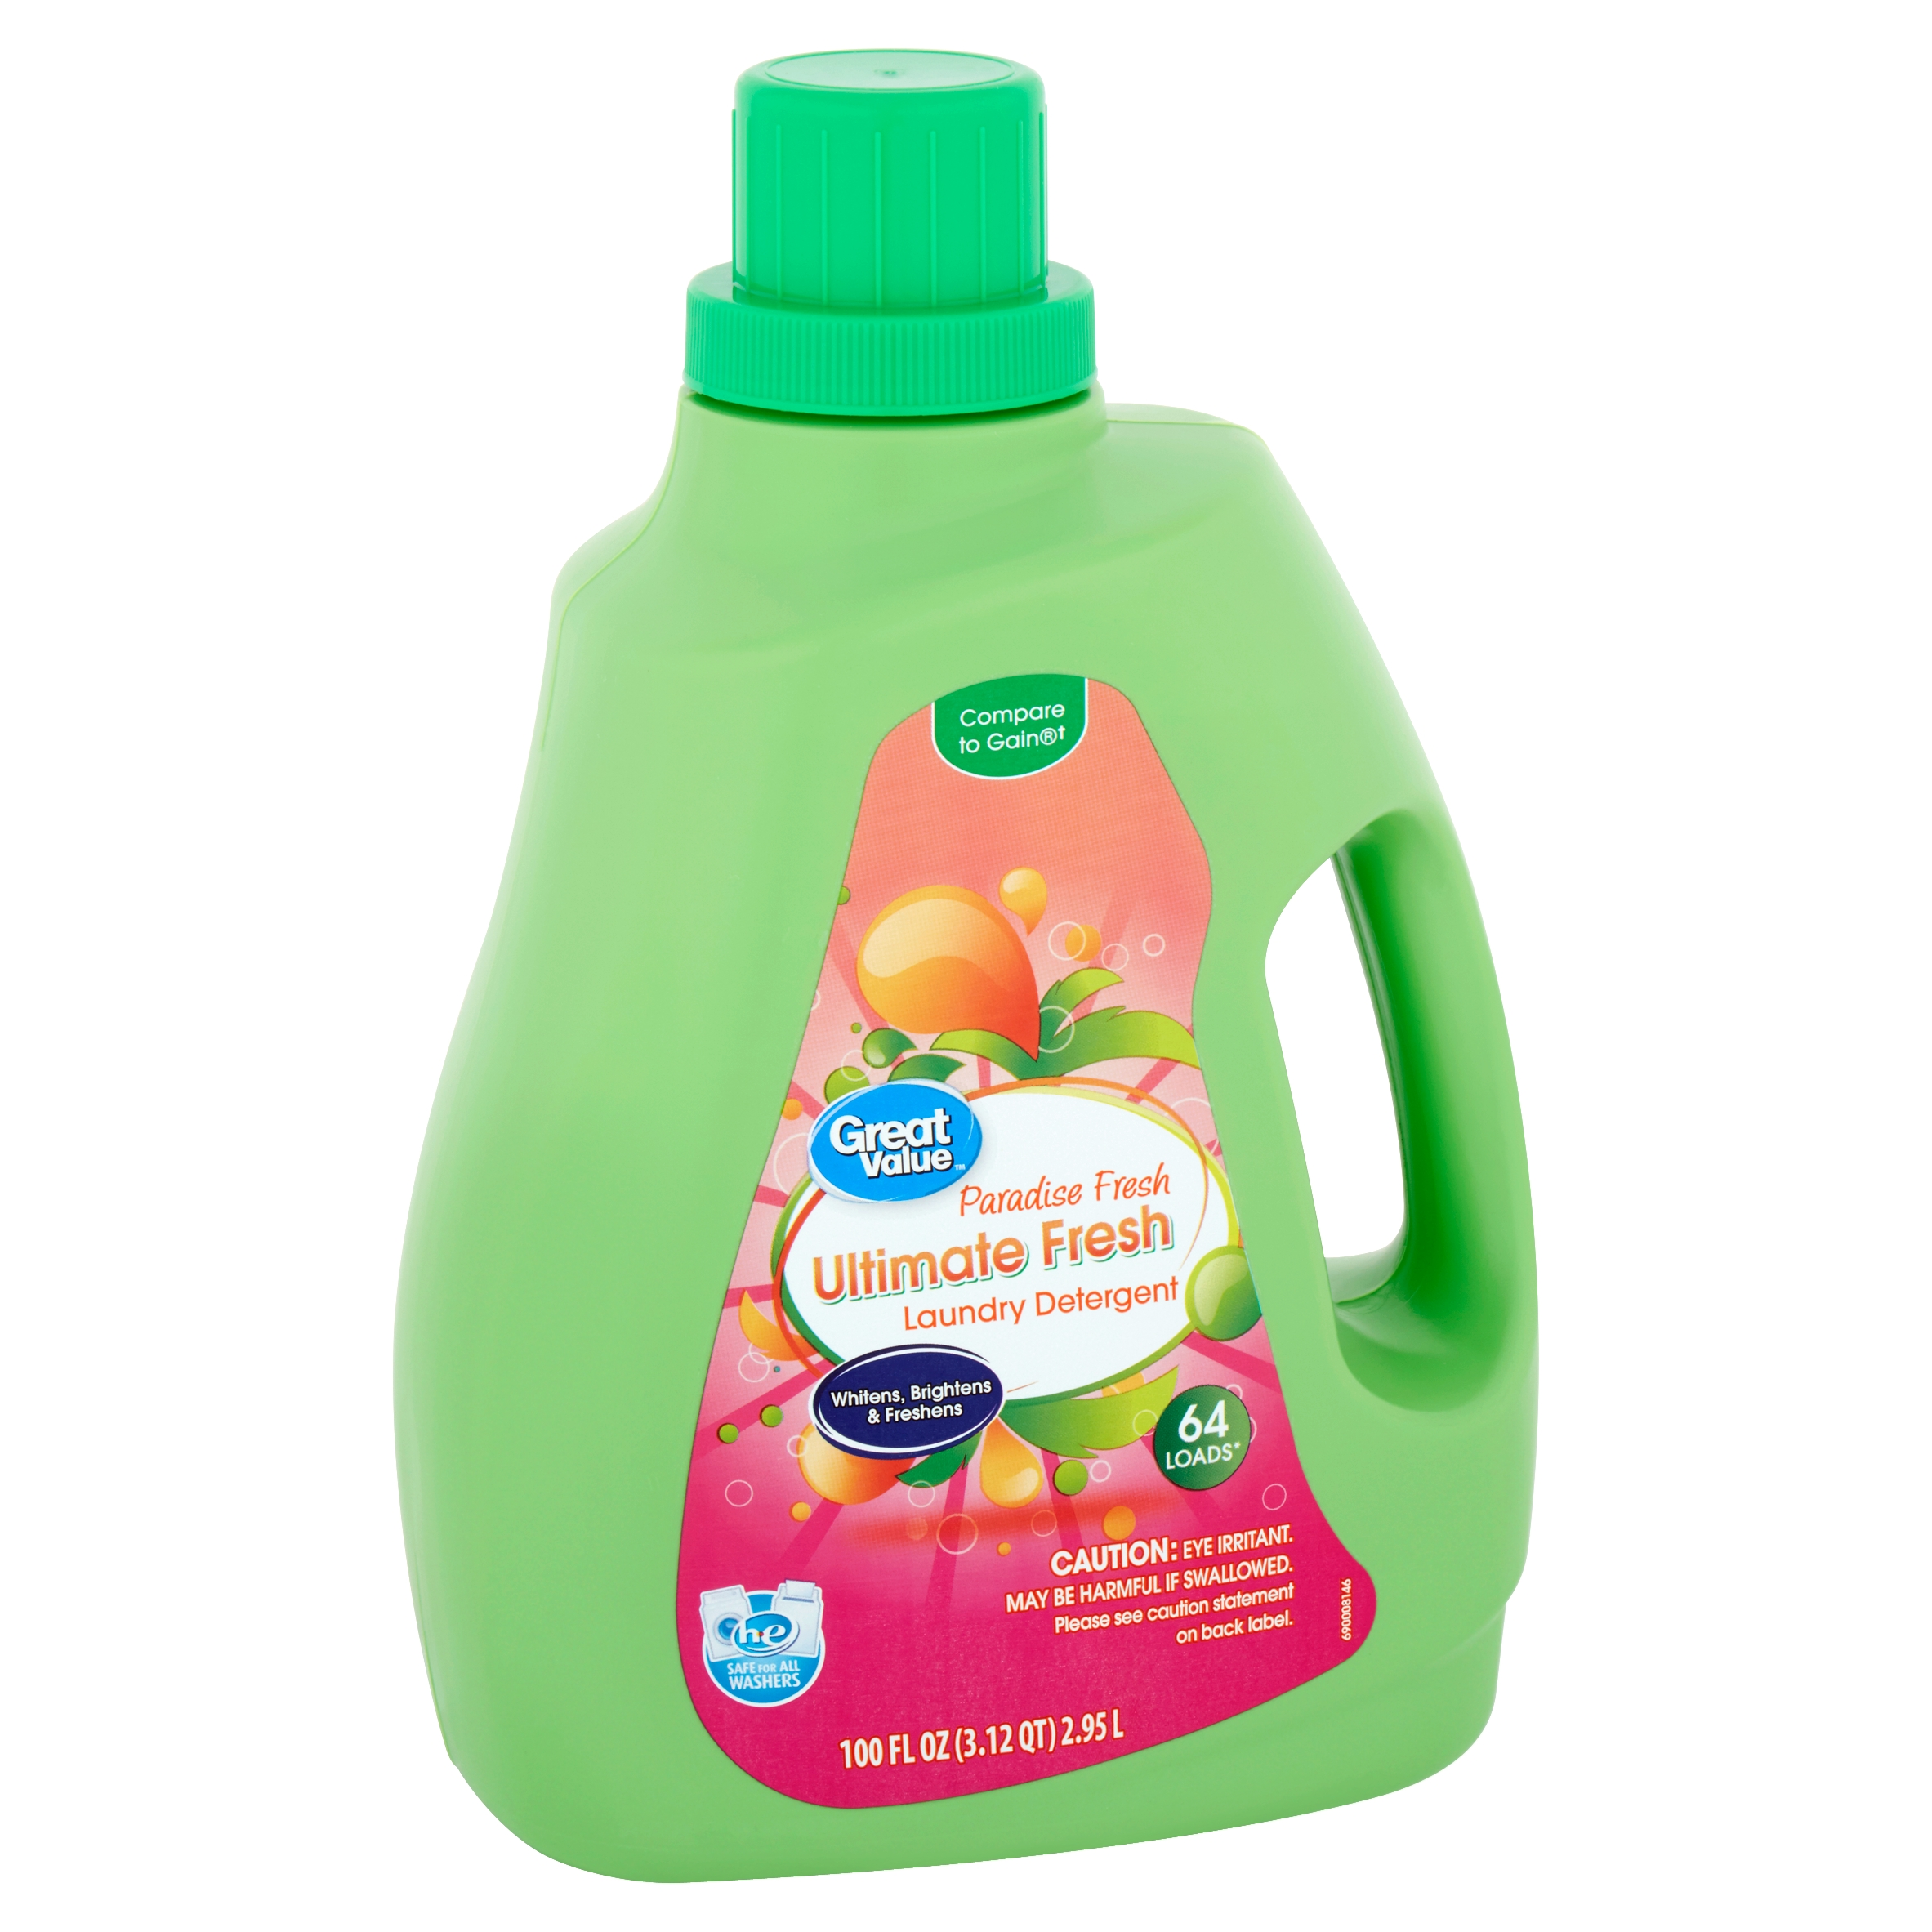 Great Value Ultimate Fresh Paradise Fresh Laundry Detergent, 64 loads, 100 fl oz